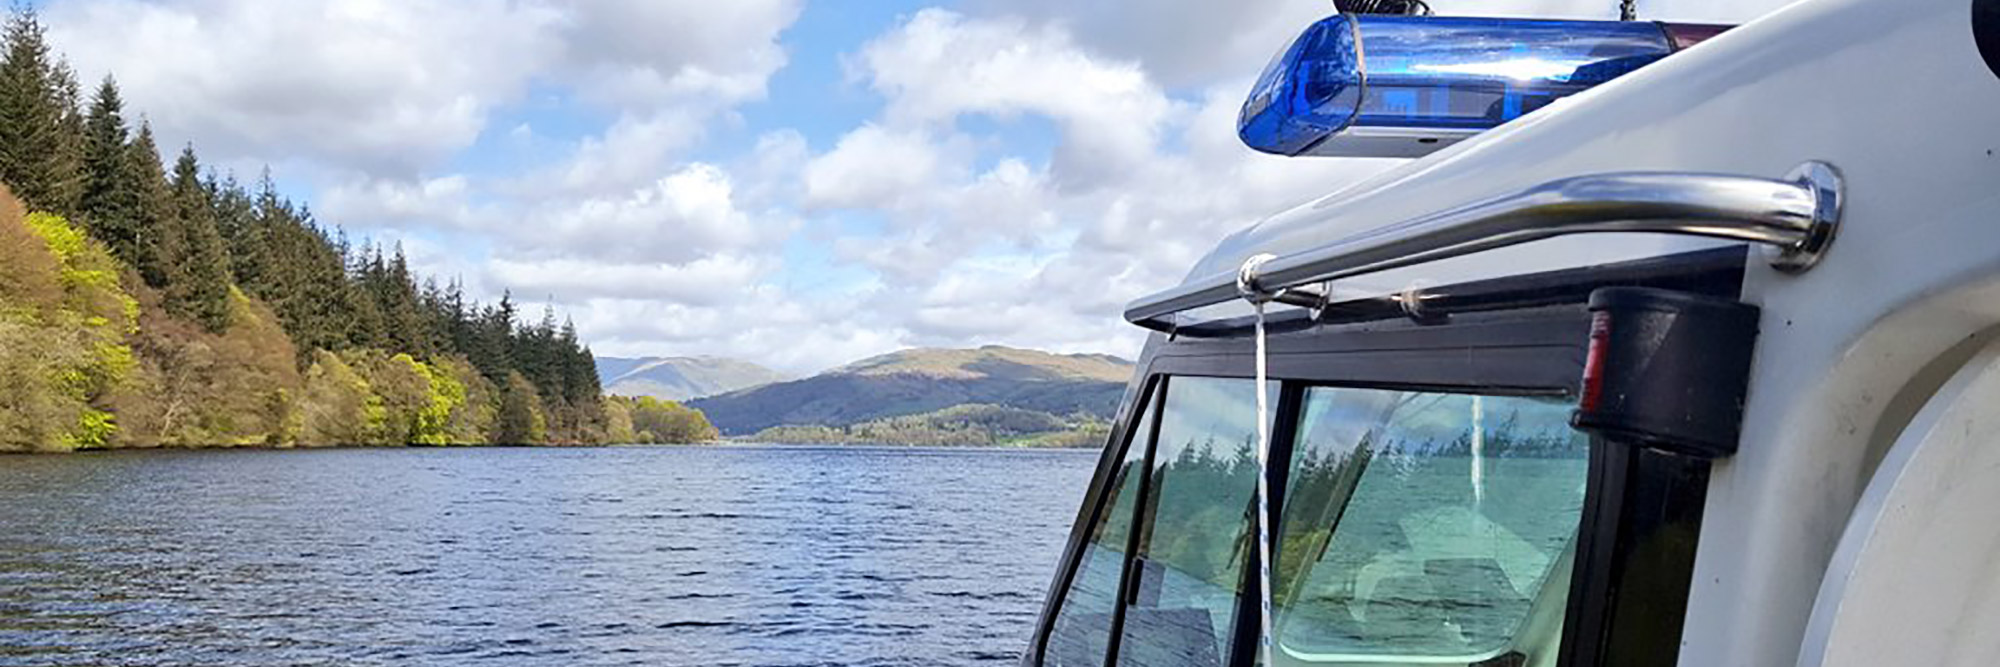 Aboard the Lake District ranger boat